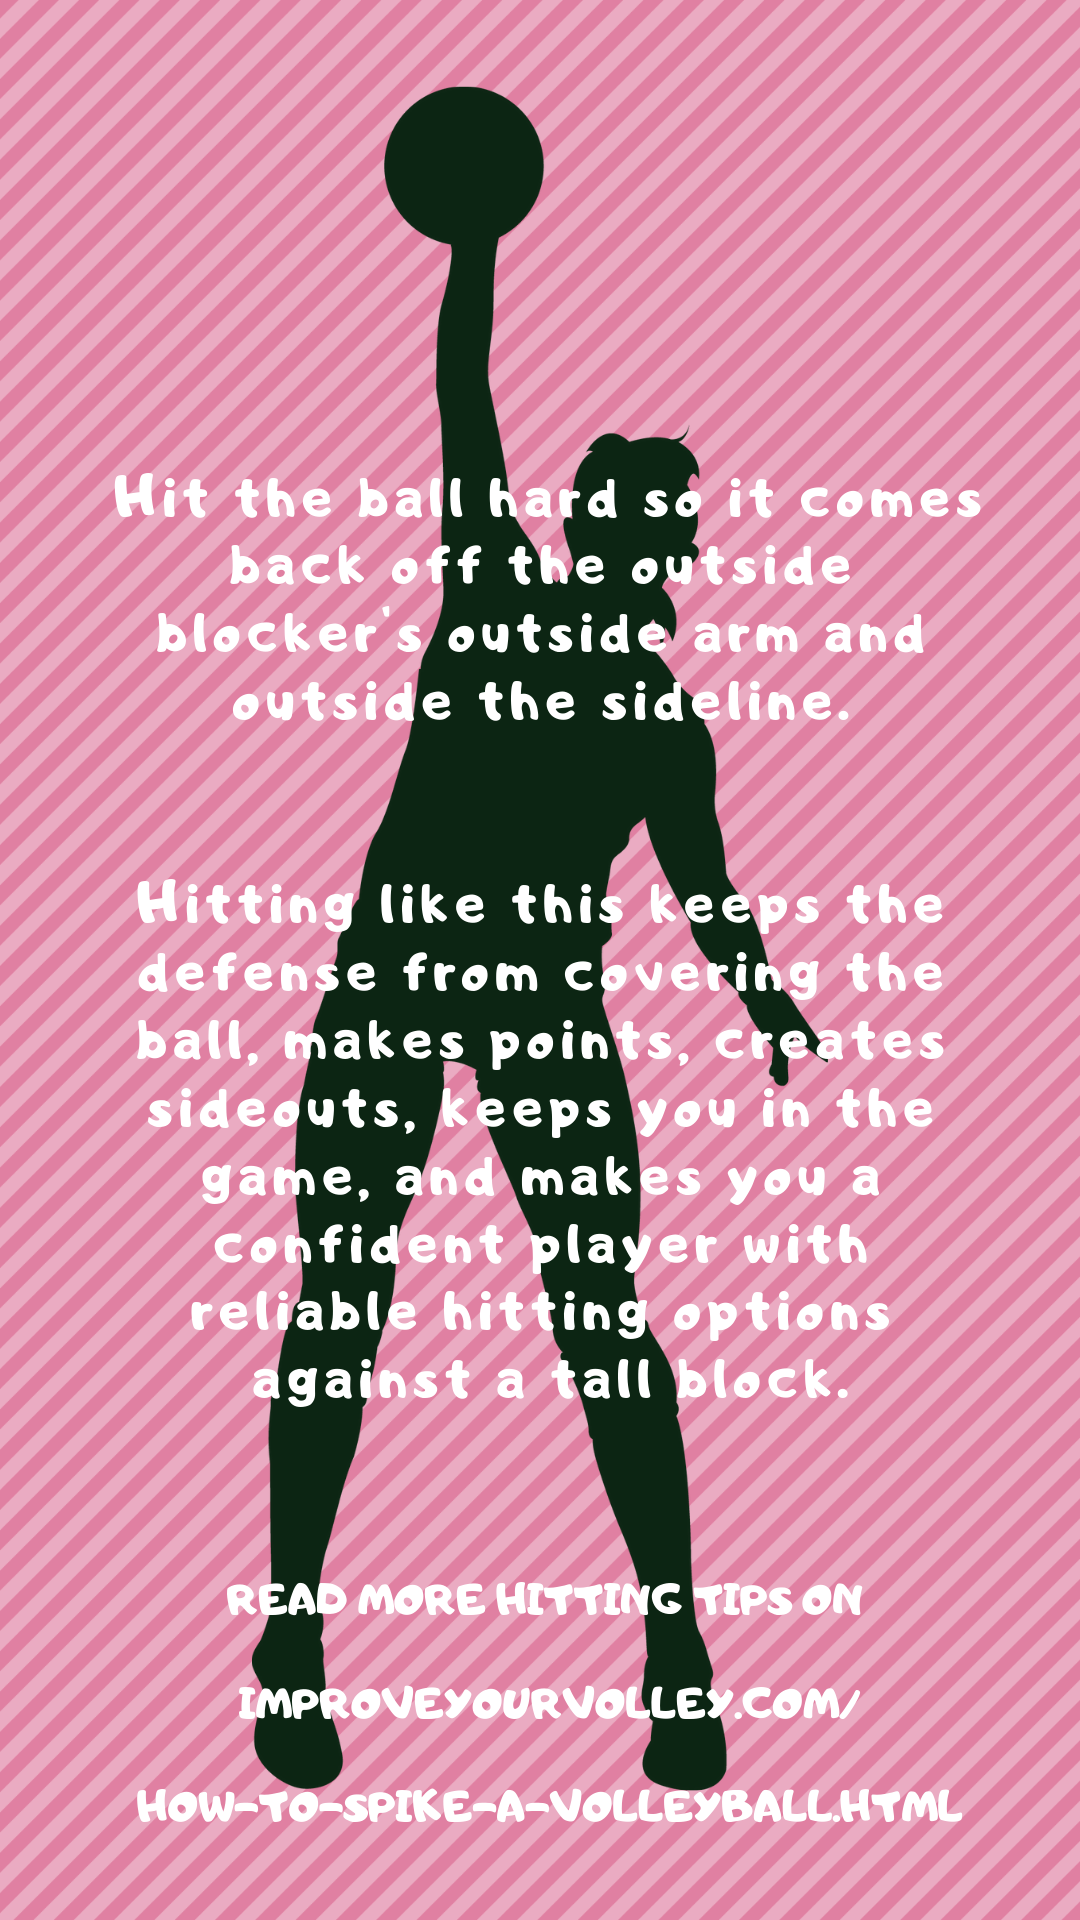 Hit the ball hard so it comes back off her arm and outside the sideline. Hitting like this keeps the defense from covering the ball, makes points, creates sideouts, keeps you in the game,